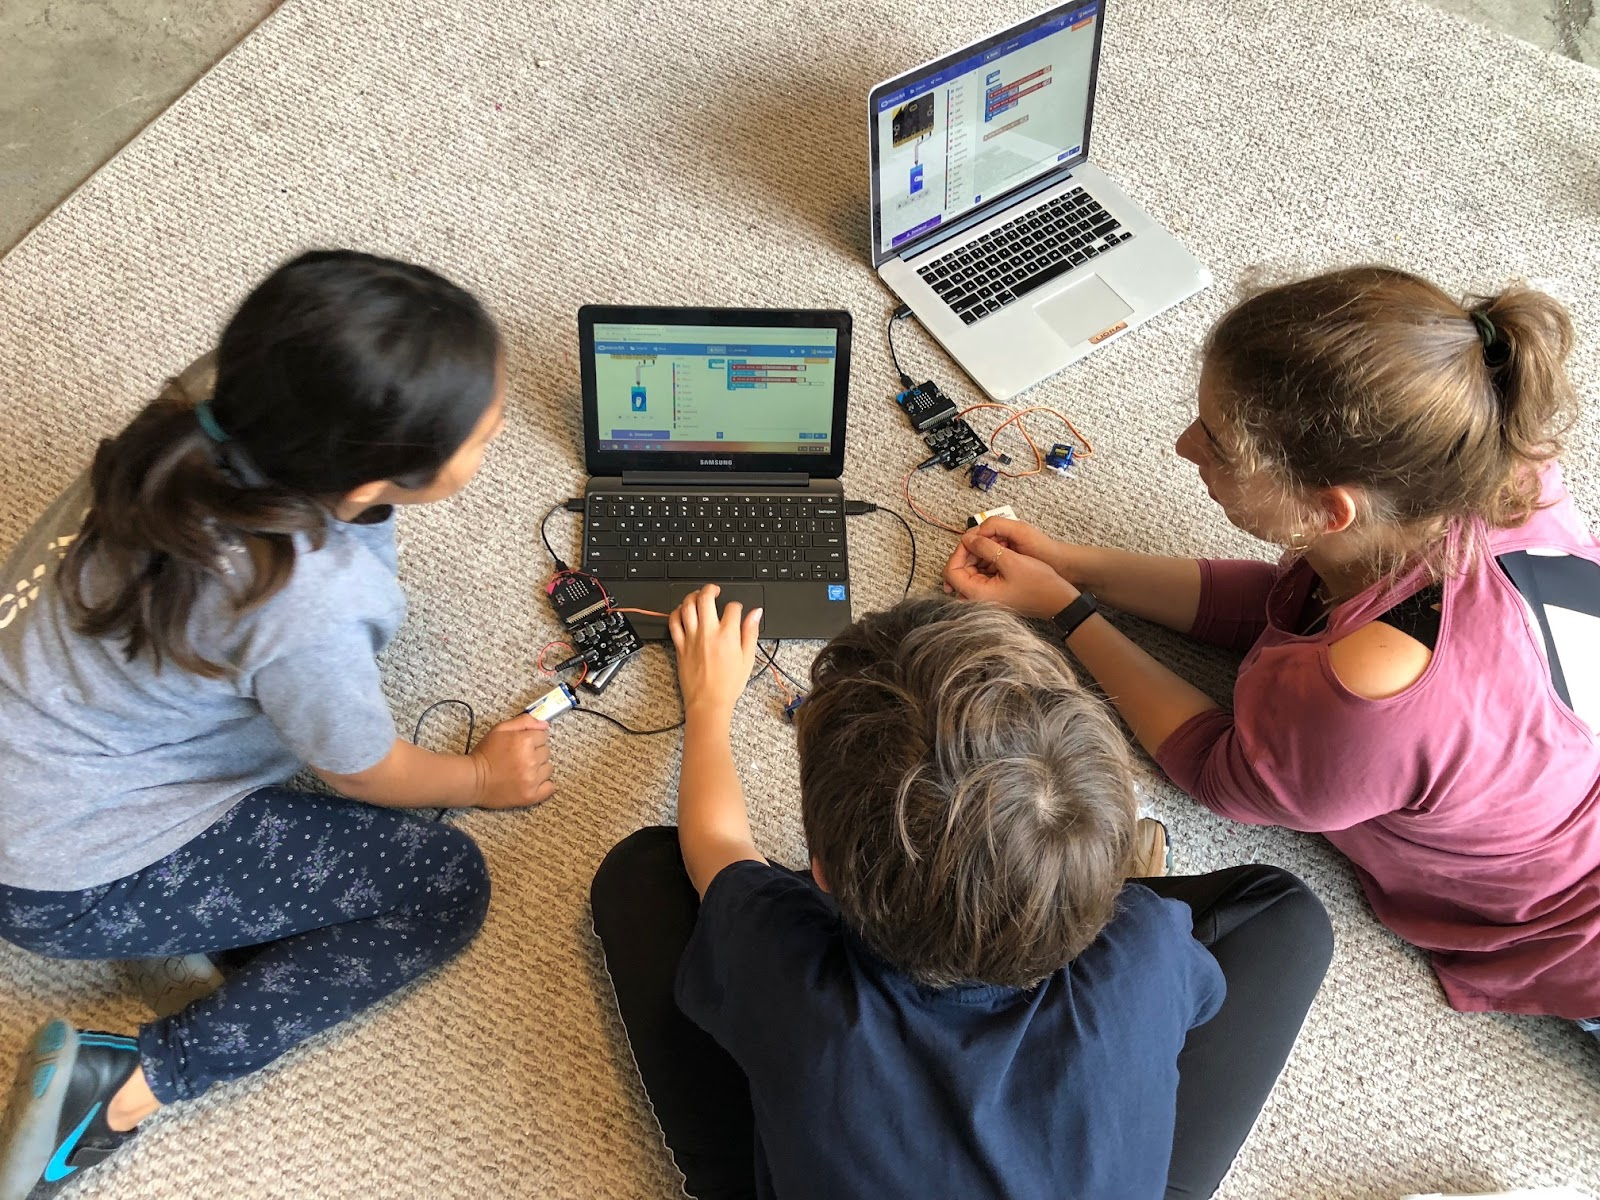 students program micro:bit and SparkFun moto:bit in MakeCode